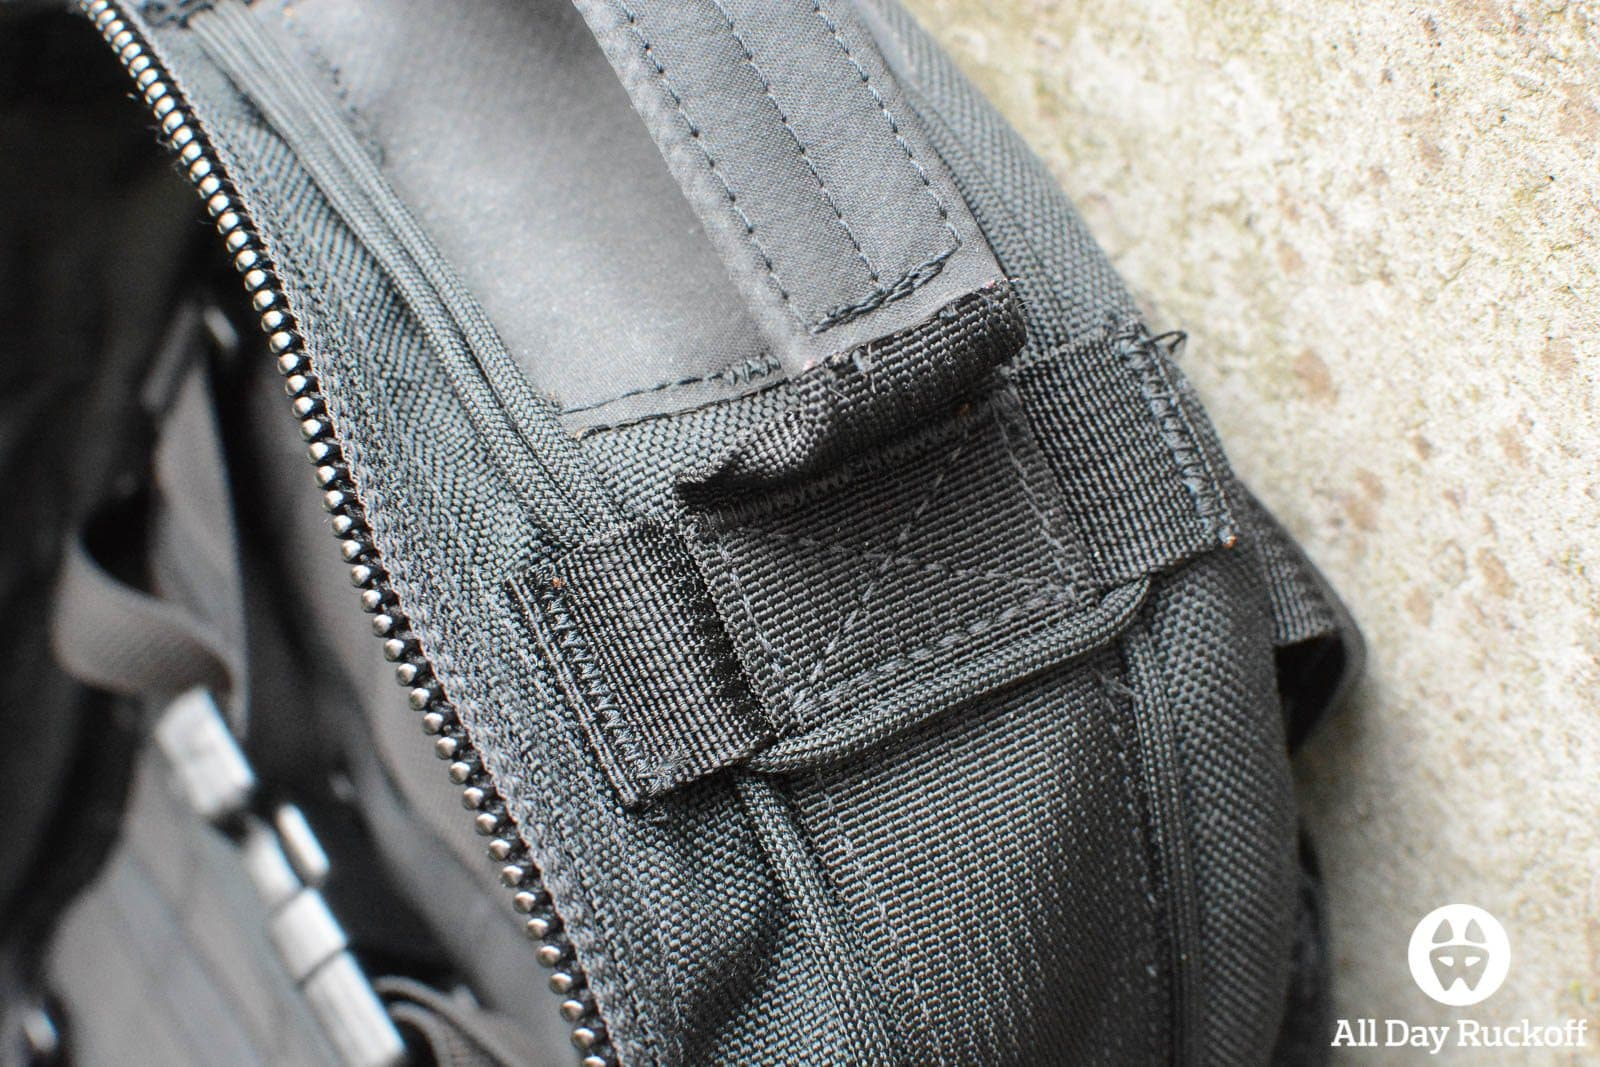 Triple Aught Design Litespeed Review - Handle Stitching